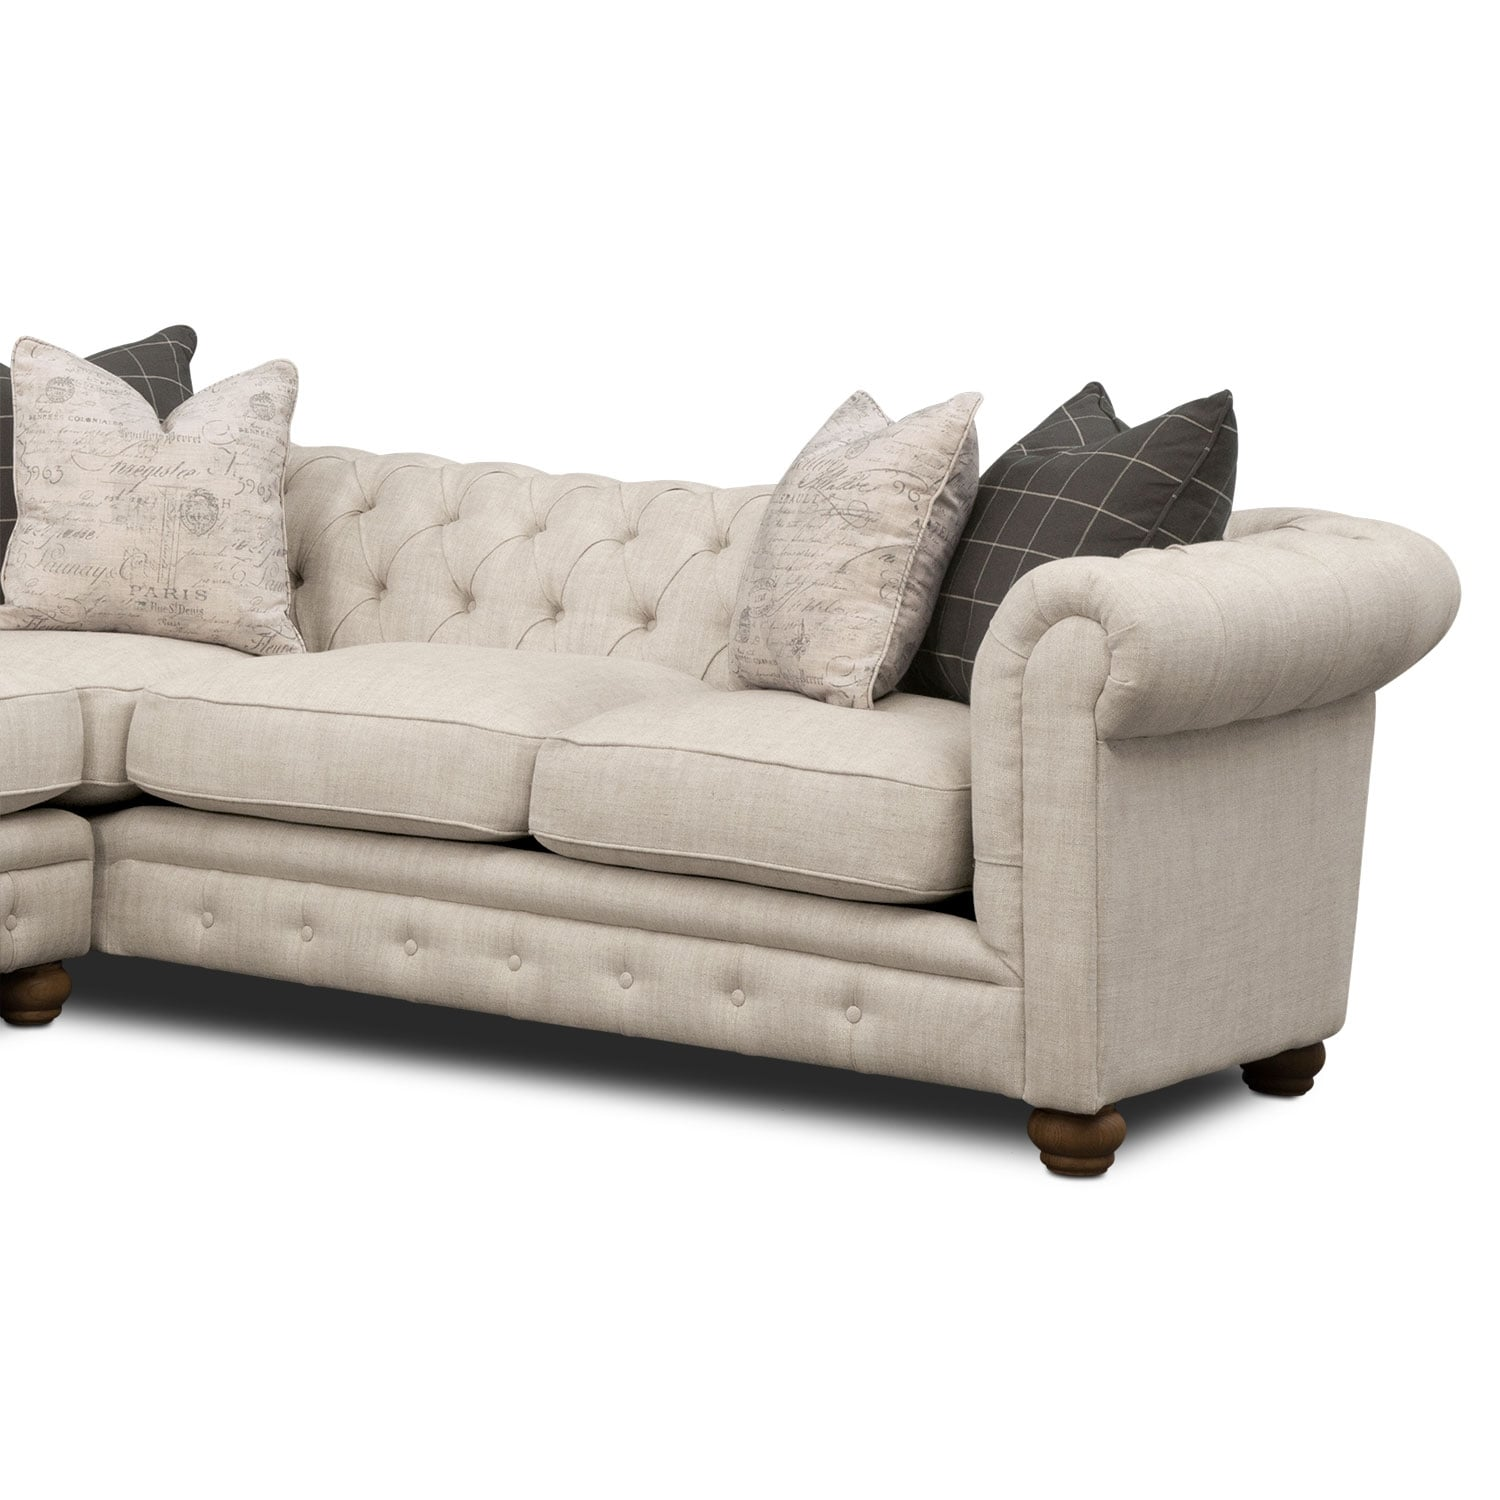 where to donate sectional sofa barker and stonehouse warranty madeline 2 piece beige american signature